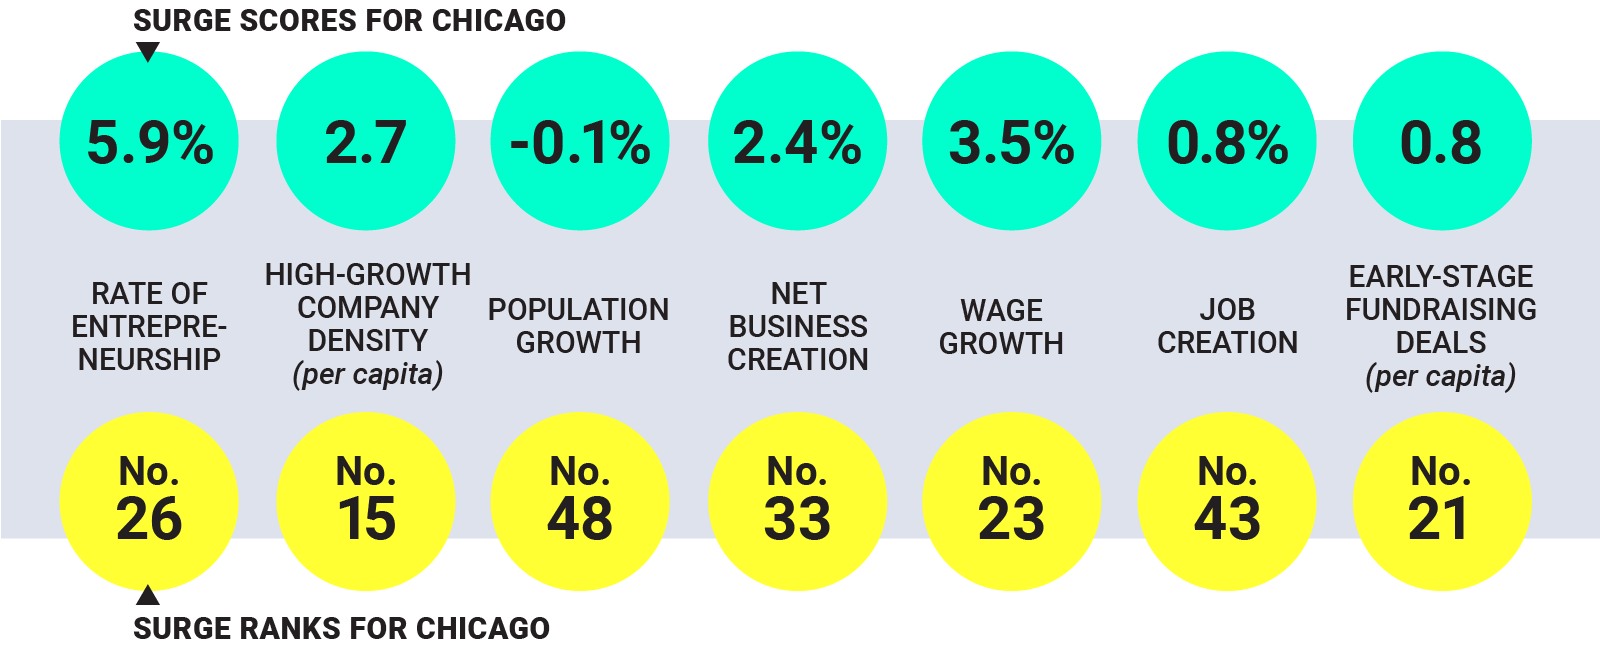 Just like its diverse neighborhoods, Chicago's business culture has many faces: No single sector owns more than 14 percent of the economy.